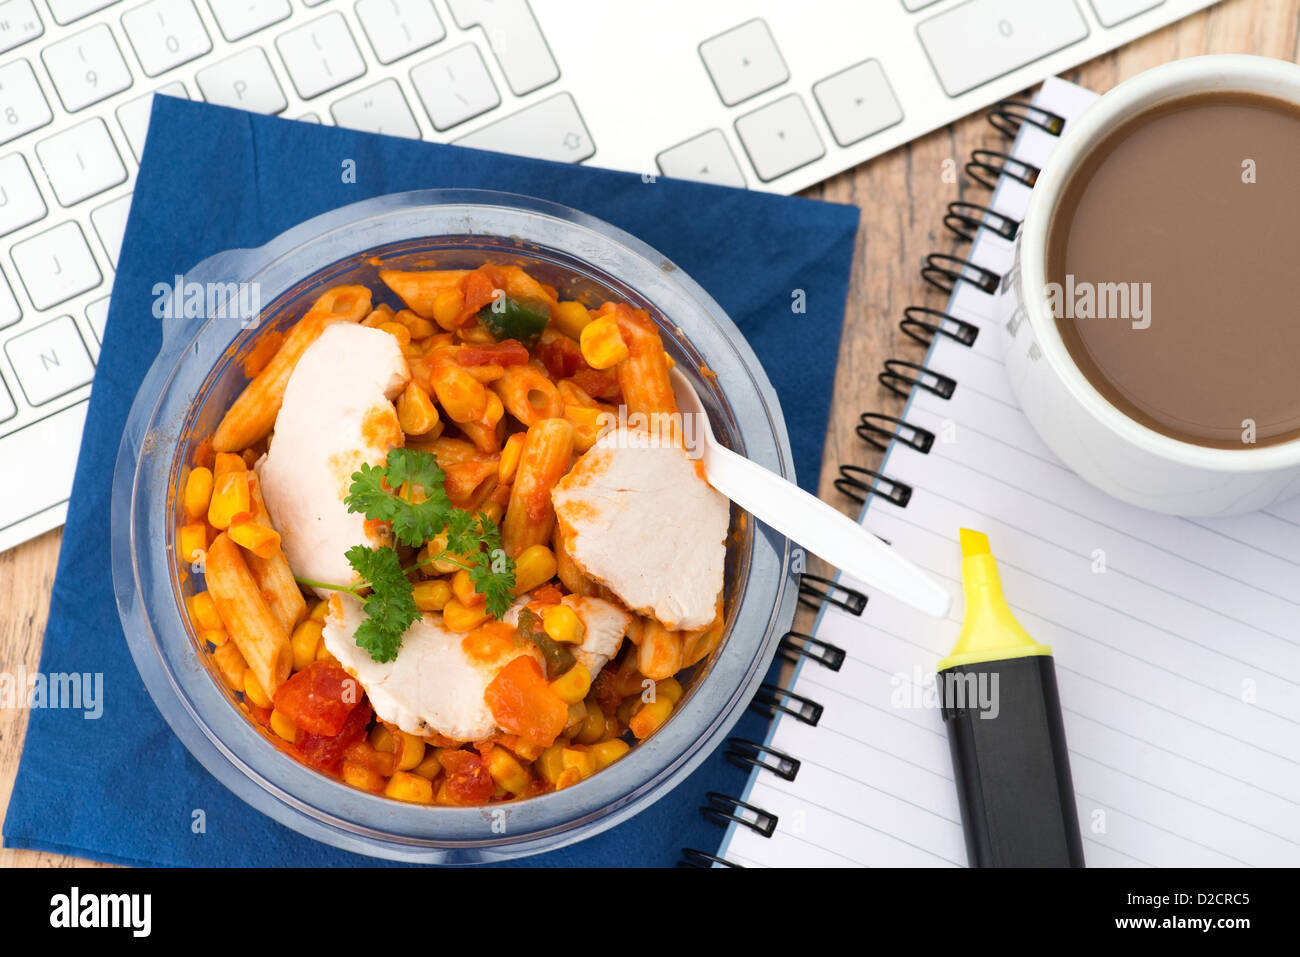 Pasta tubes in tomato sauce with chicken being eaten at an office desk. Stock Photo